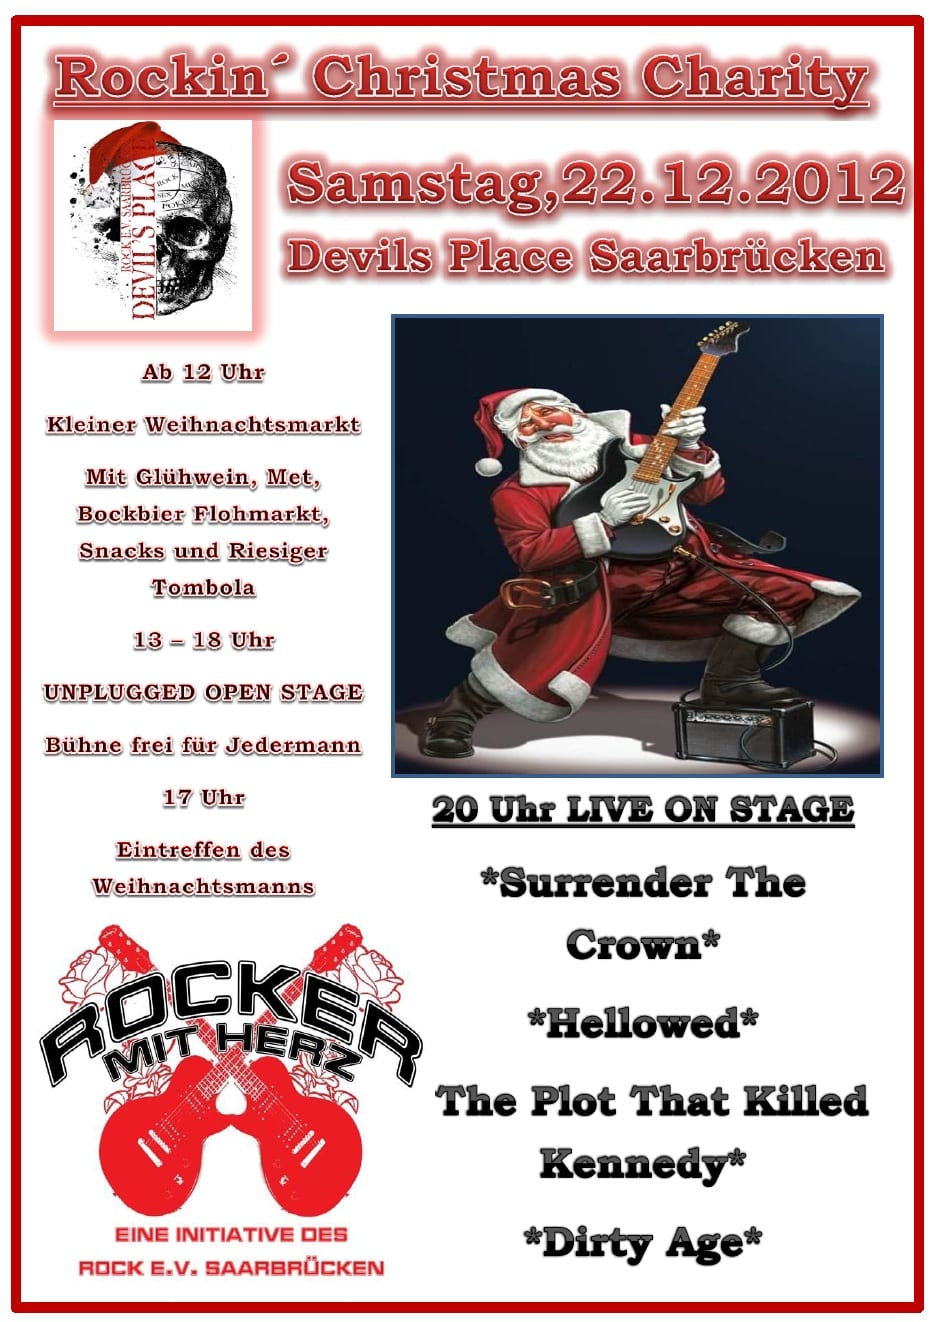 Devils Place Saarbrücken Christmas Charity 2012 Flyer